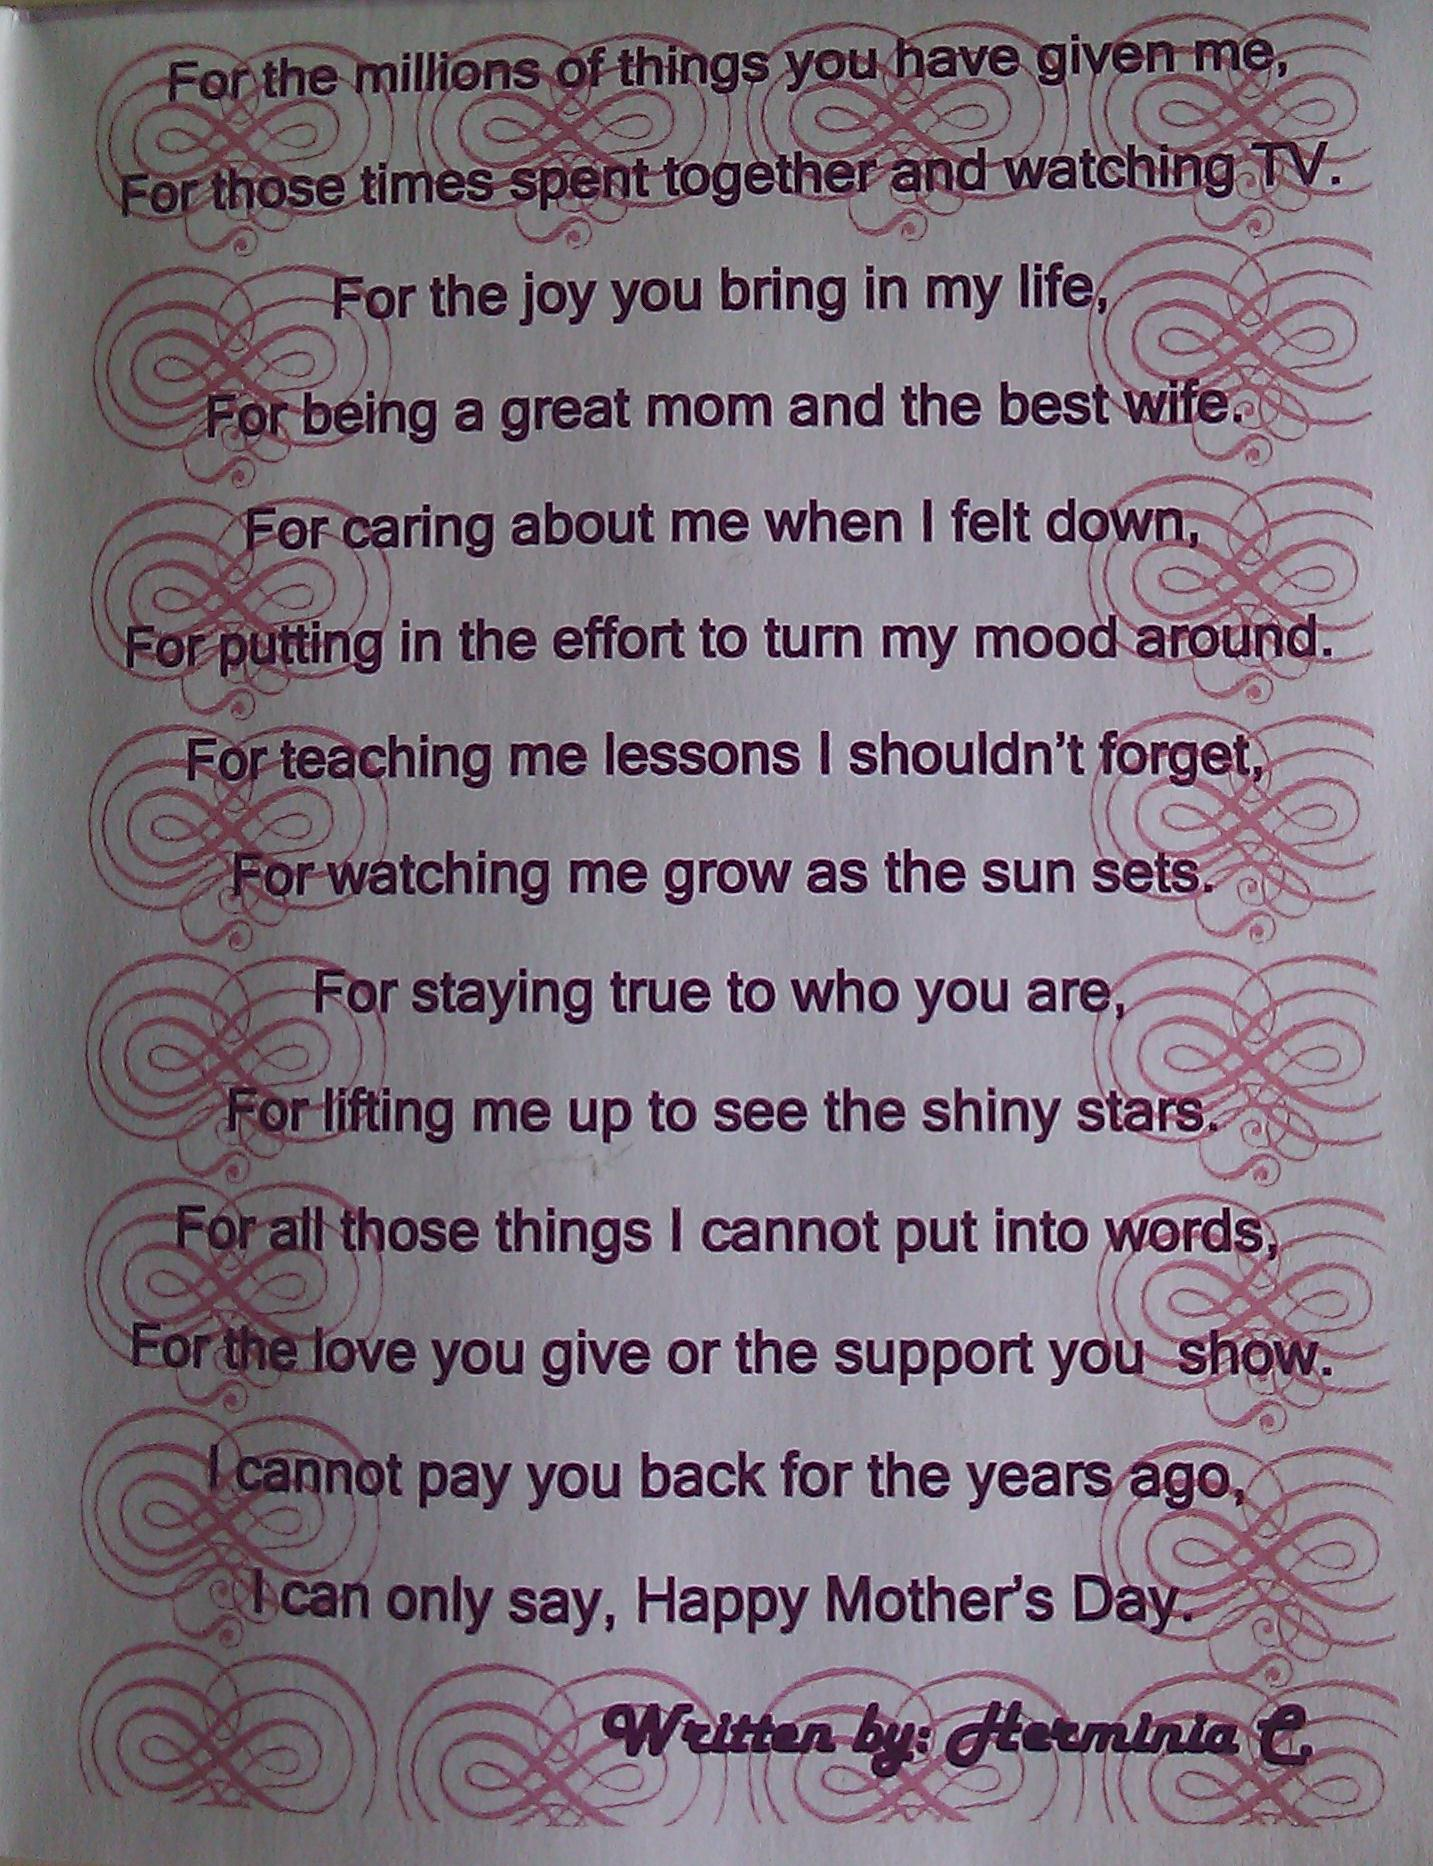 Dear Mom Poem An original poem written